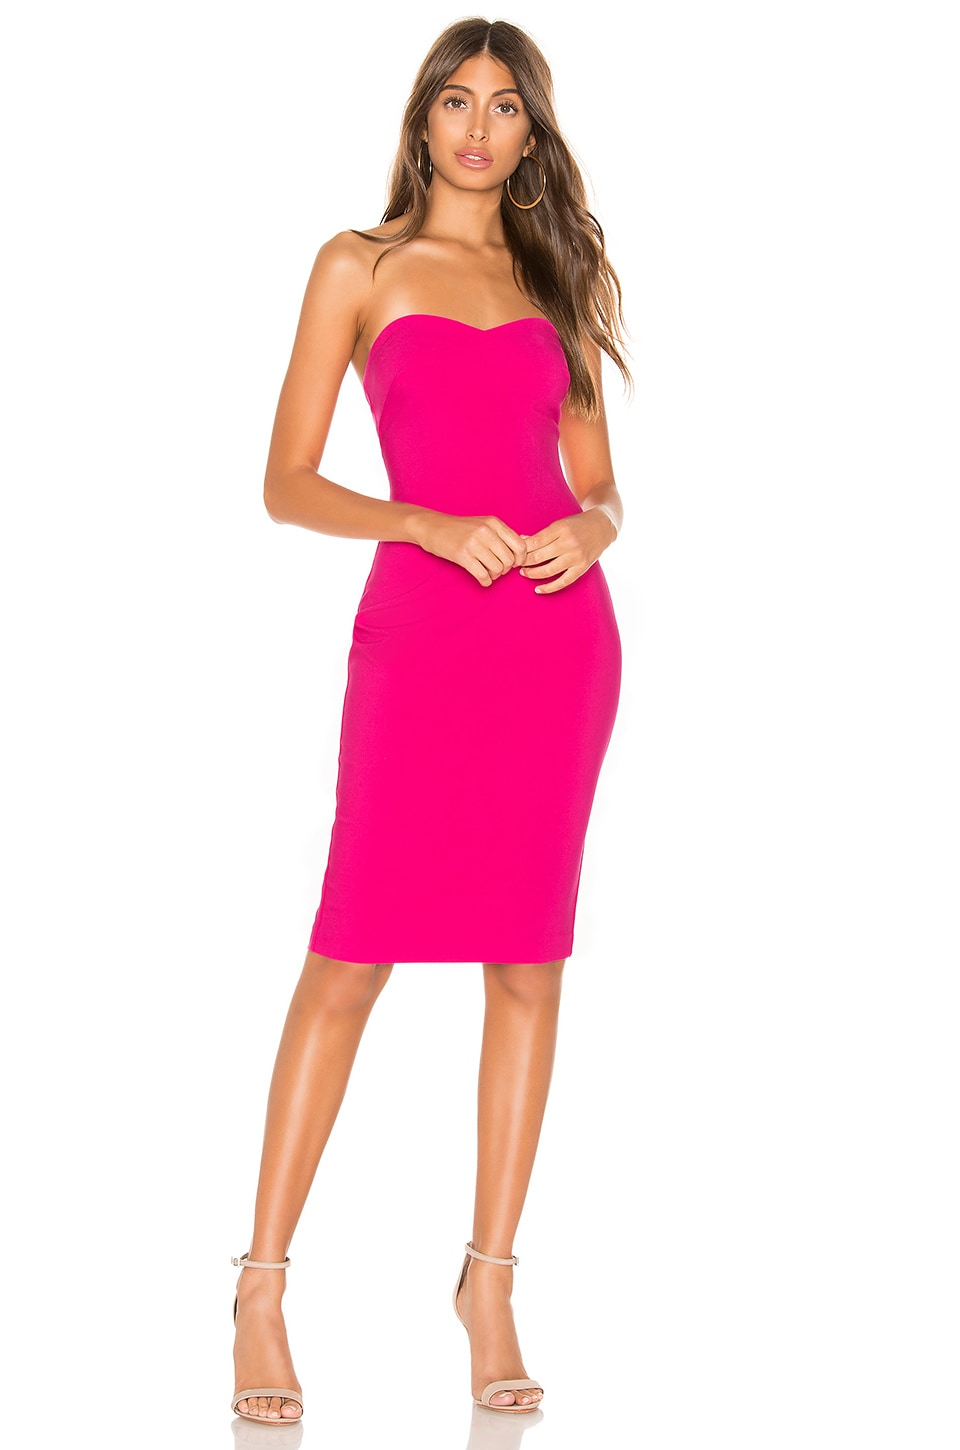 LIKELY Laurens Dress in Fuchsia